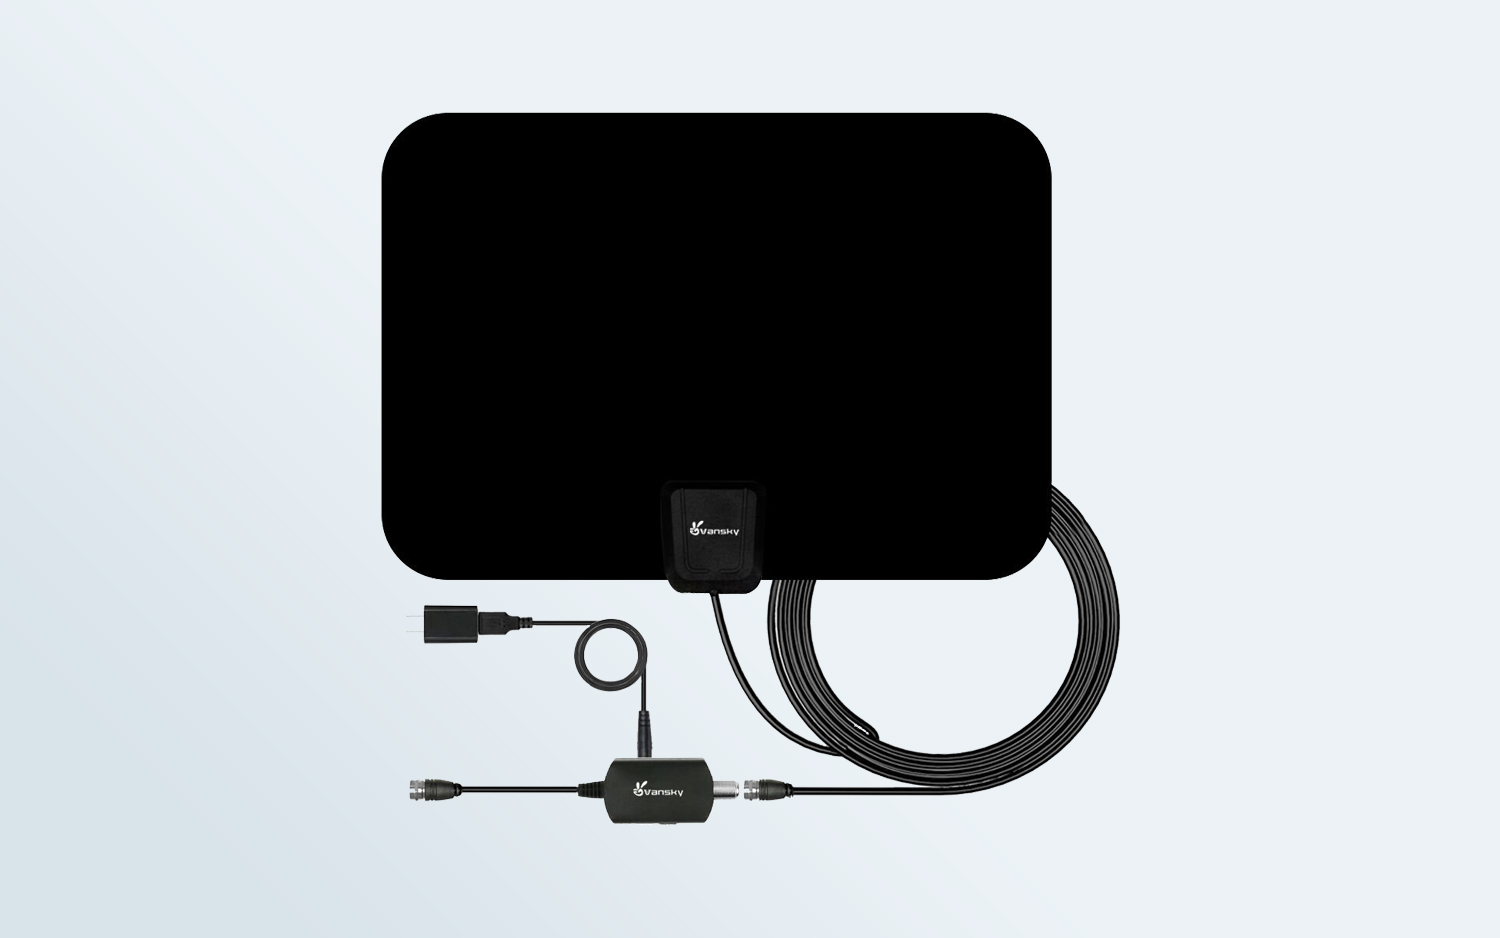 Best HDTV Antennas of 2019 - TV Antenna Reviews and